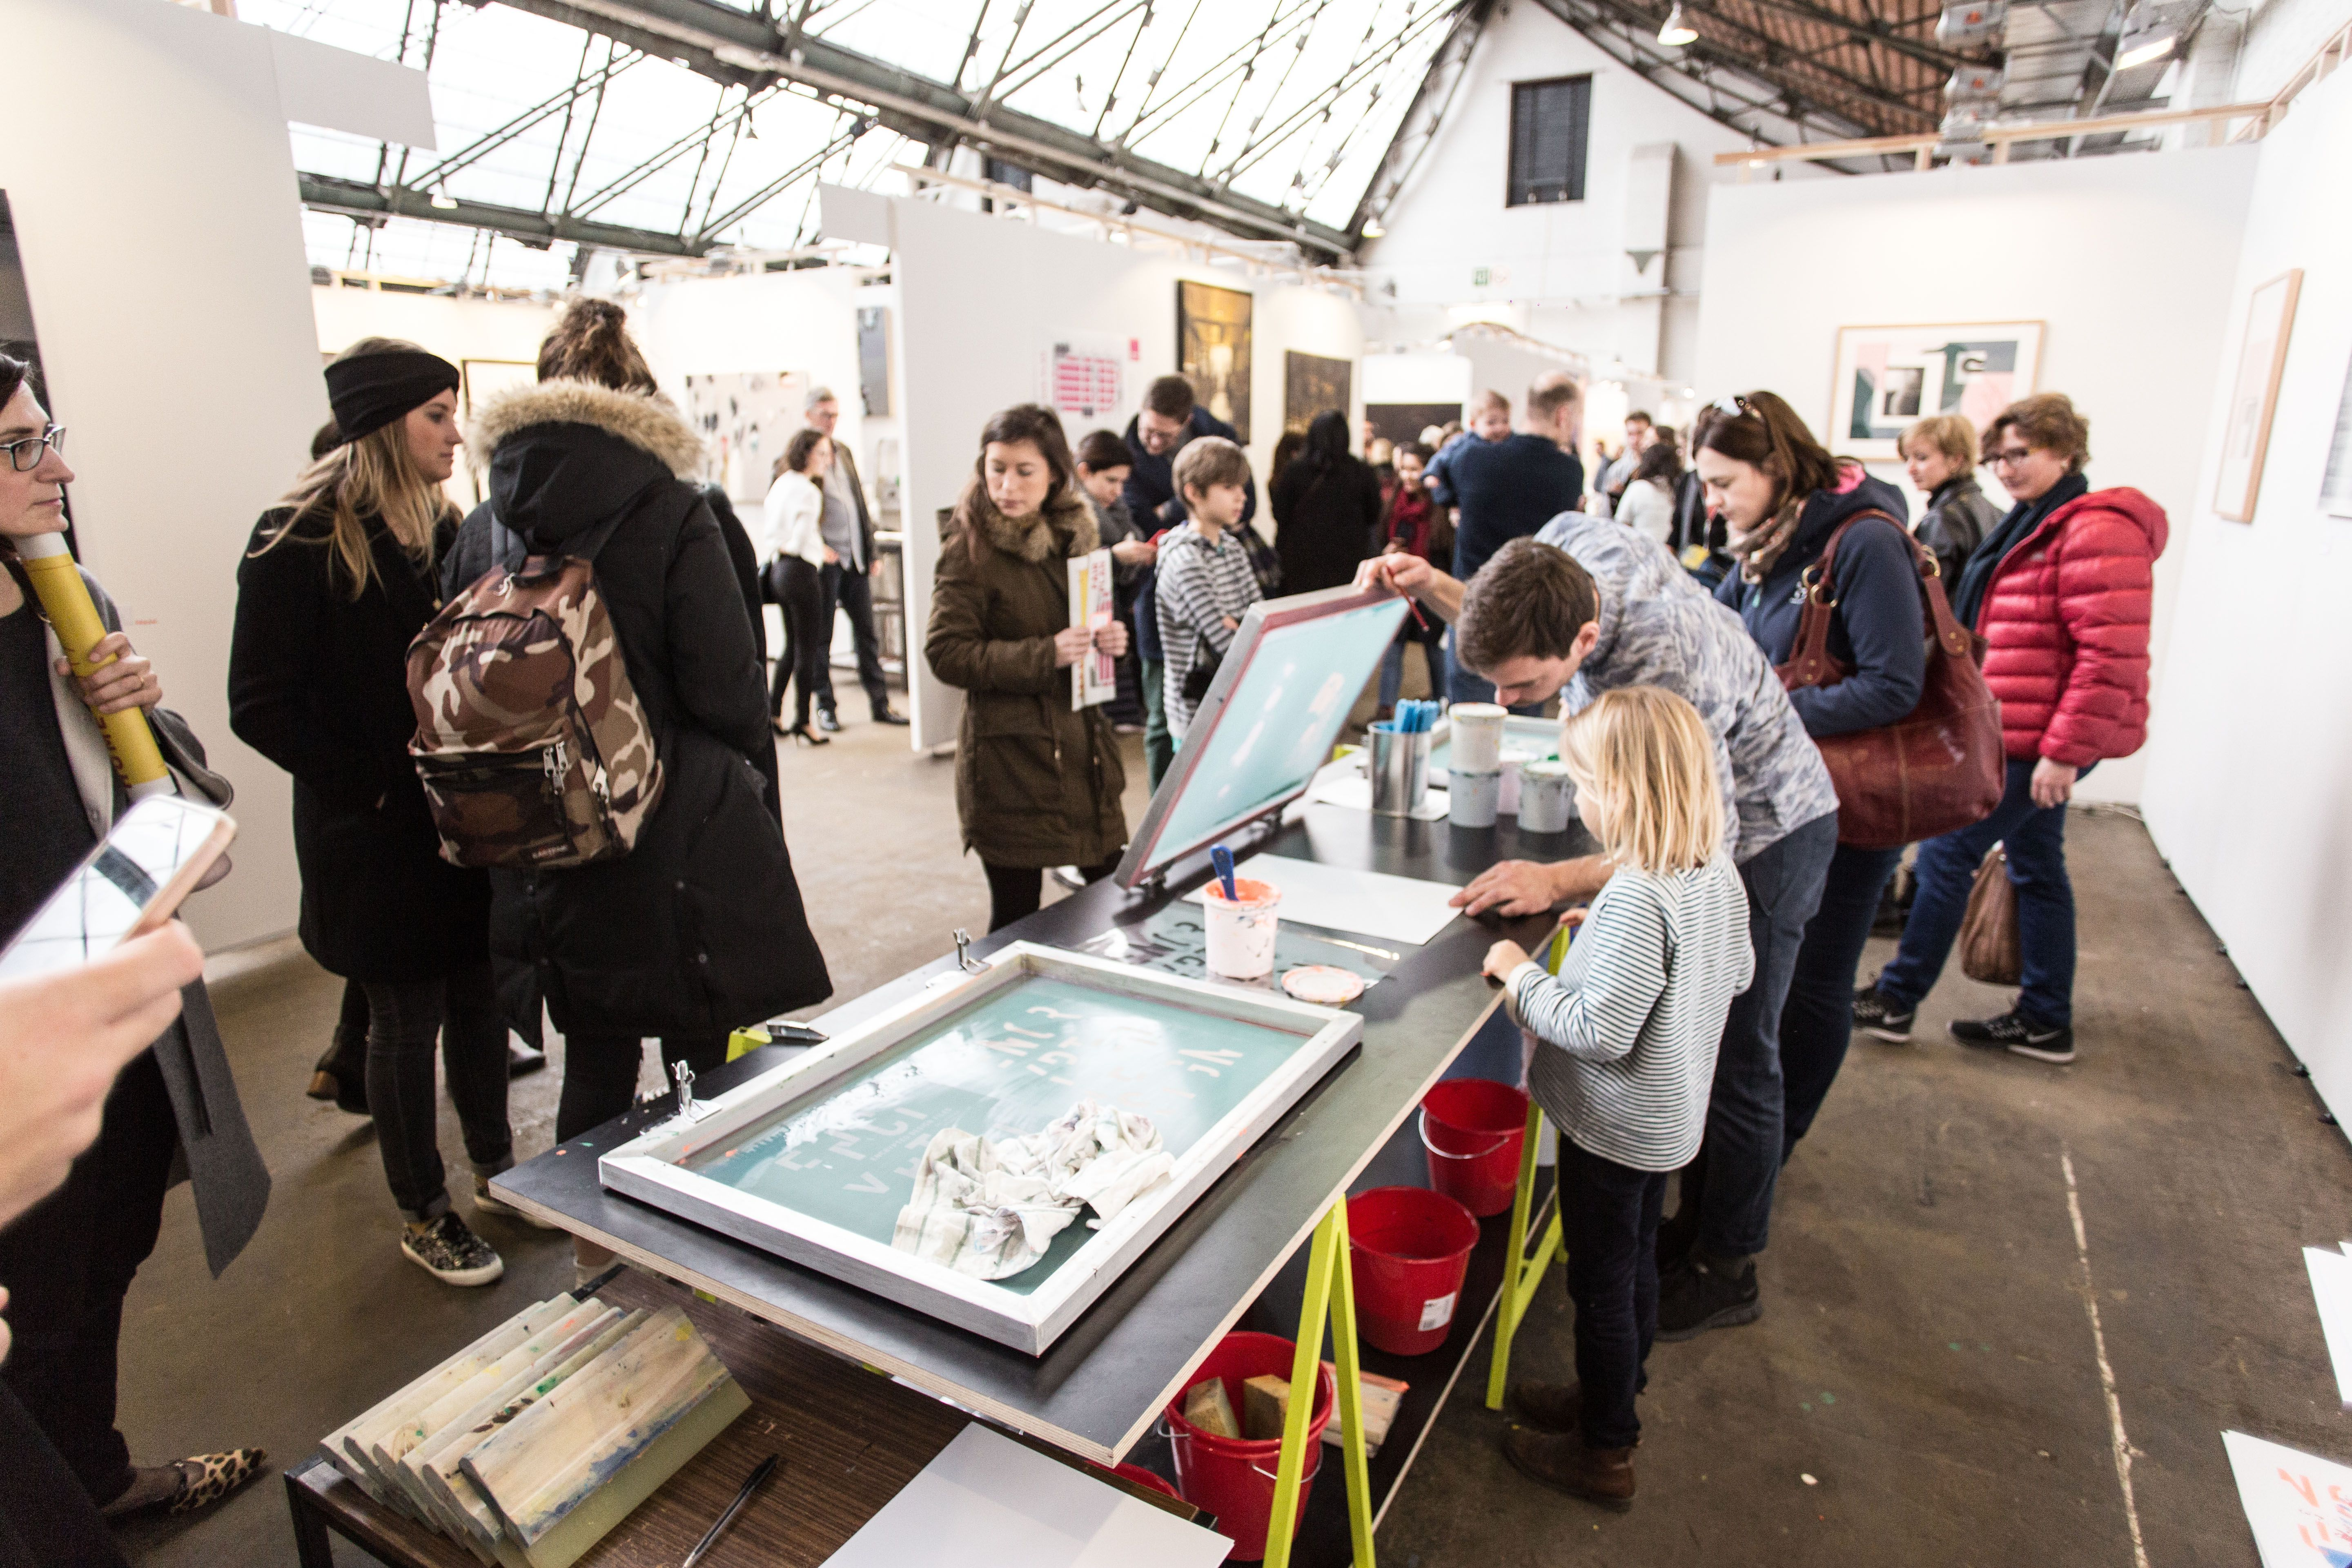 Affordable Art Fair Brussels 2017 Aafbrussels Affordableartfair Takearthome Art Contemporaryart Artfa Bone Crafts Art Fair Affordable Art Fair